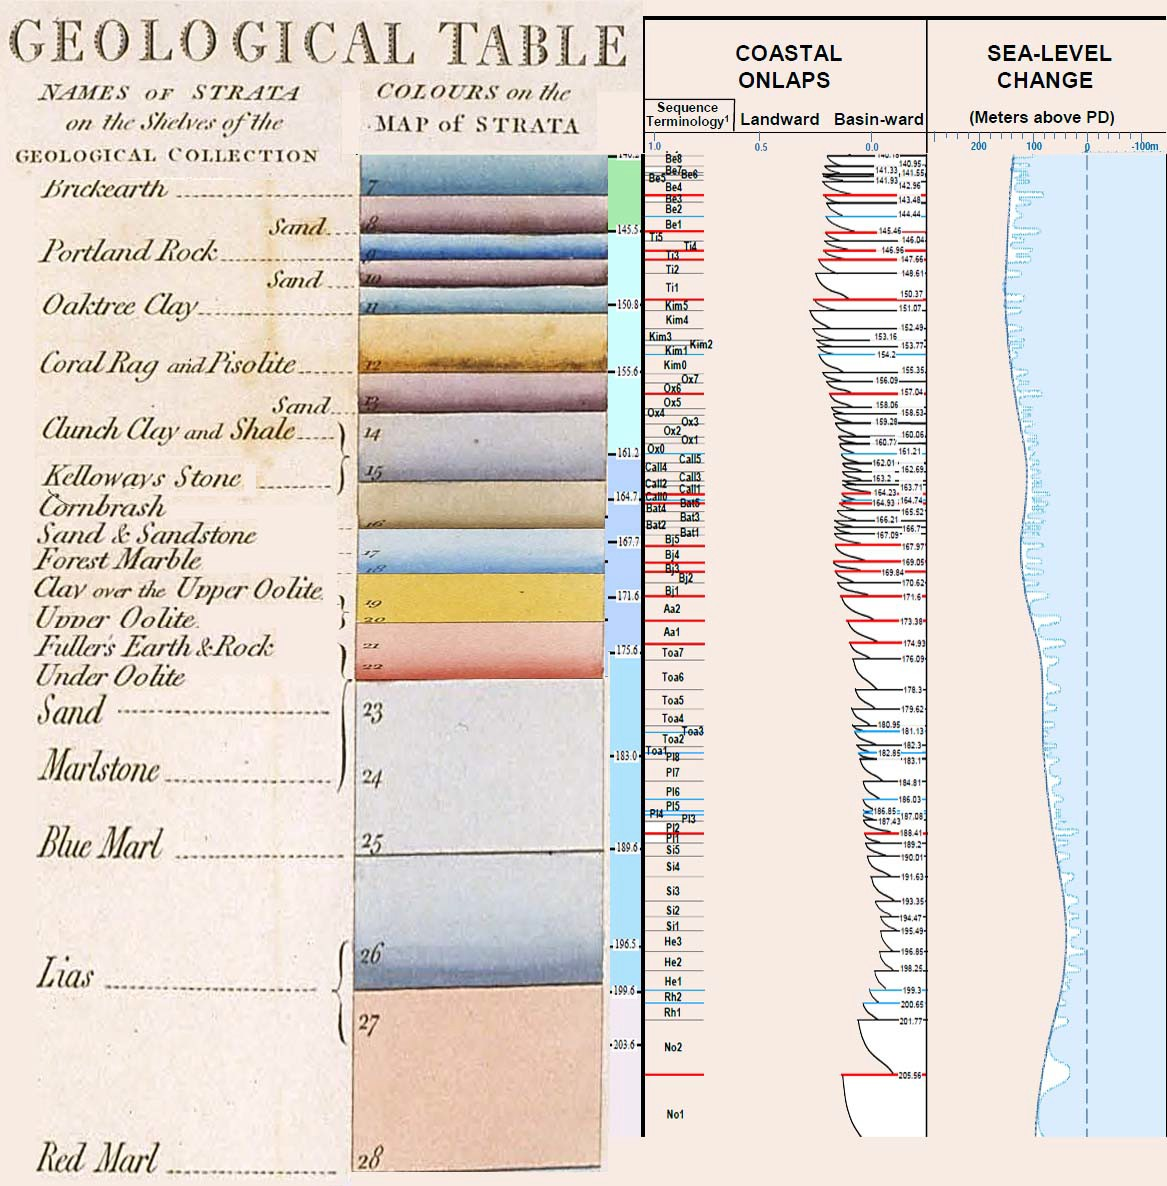 Part of William Smith's Table of Strata shown in comparison with modern stratigraphic sequences and sea-level curves, red = major sea-level change, blue = minor sea-level change, modified from John W. Snedden and Chengjie Liu (2010) (Exxon)